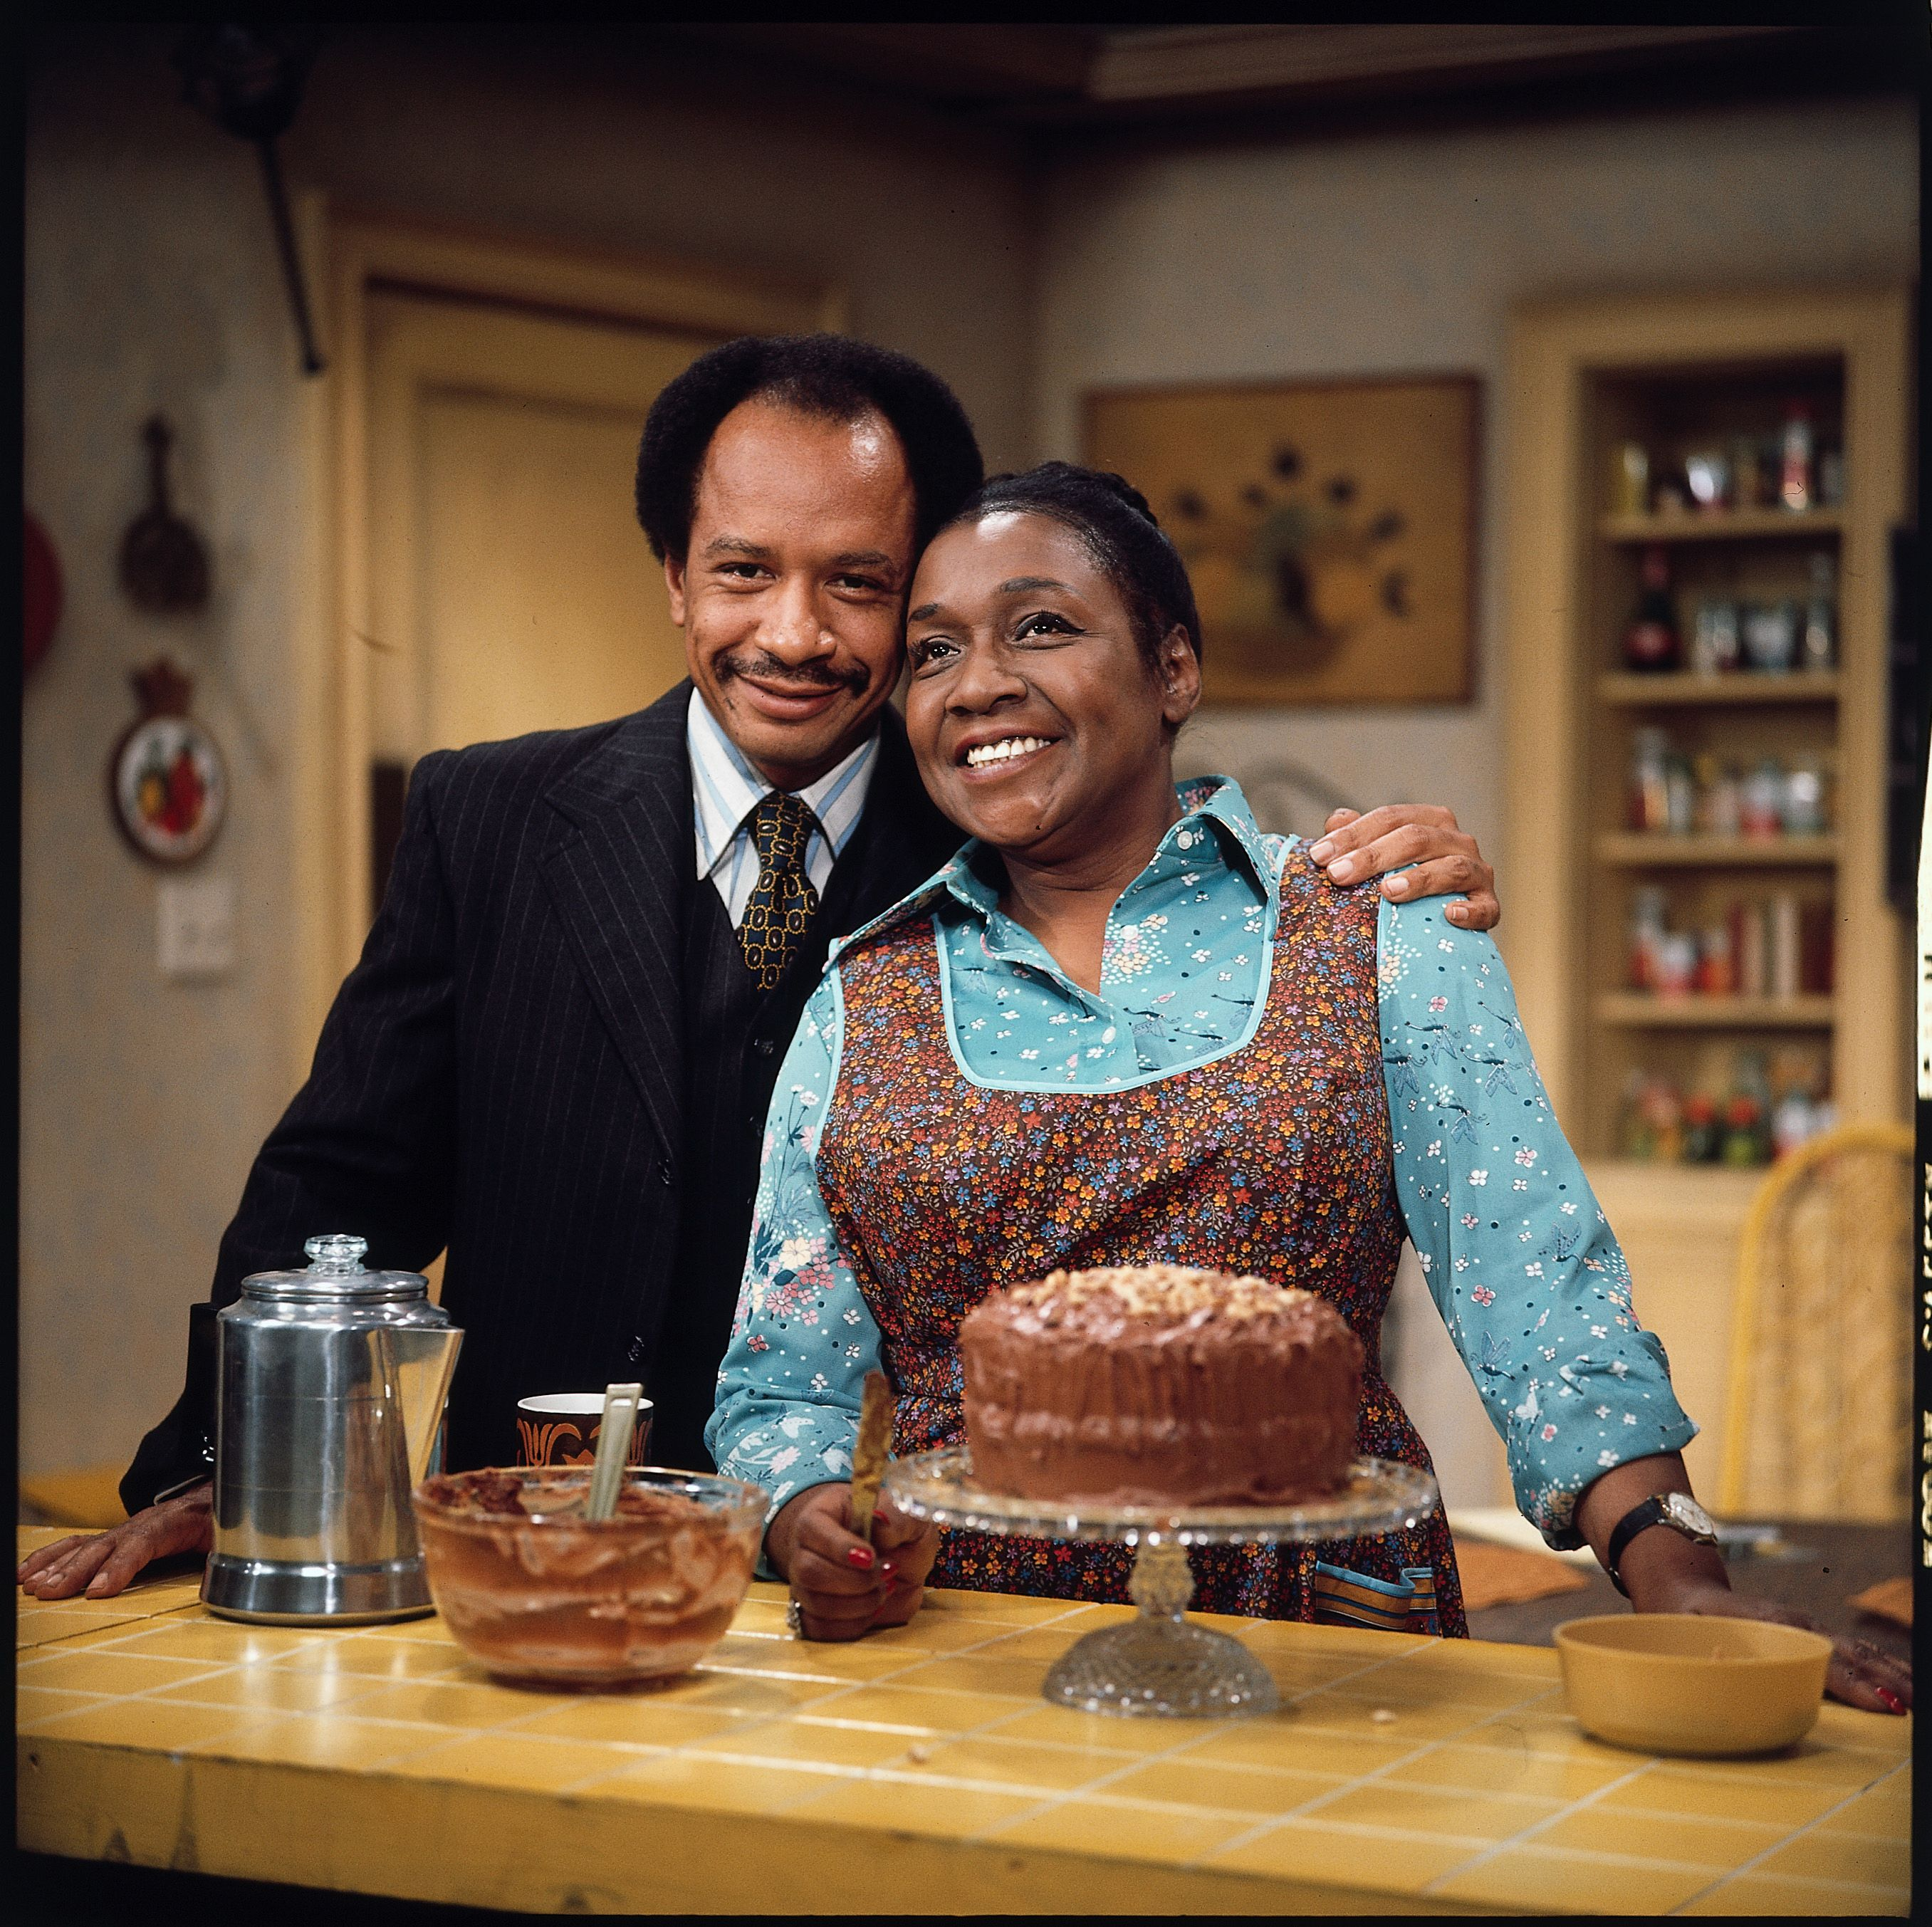 The Jefferson stars Sherman Hemsley and Isabel Sanford| Photo: Getty Images